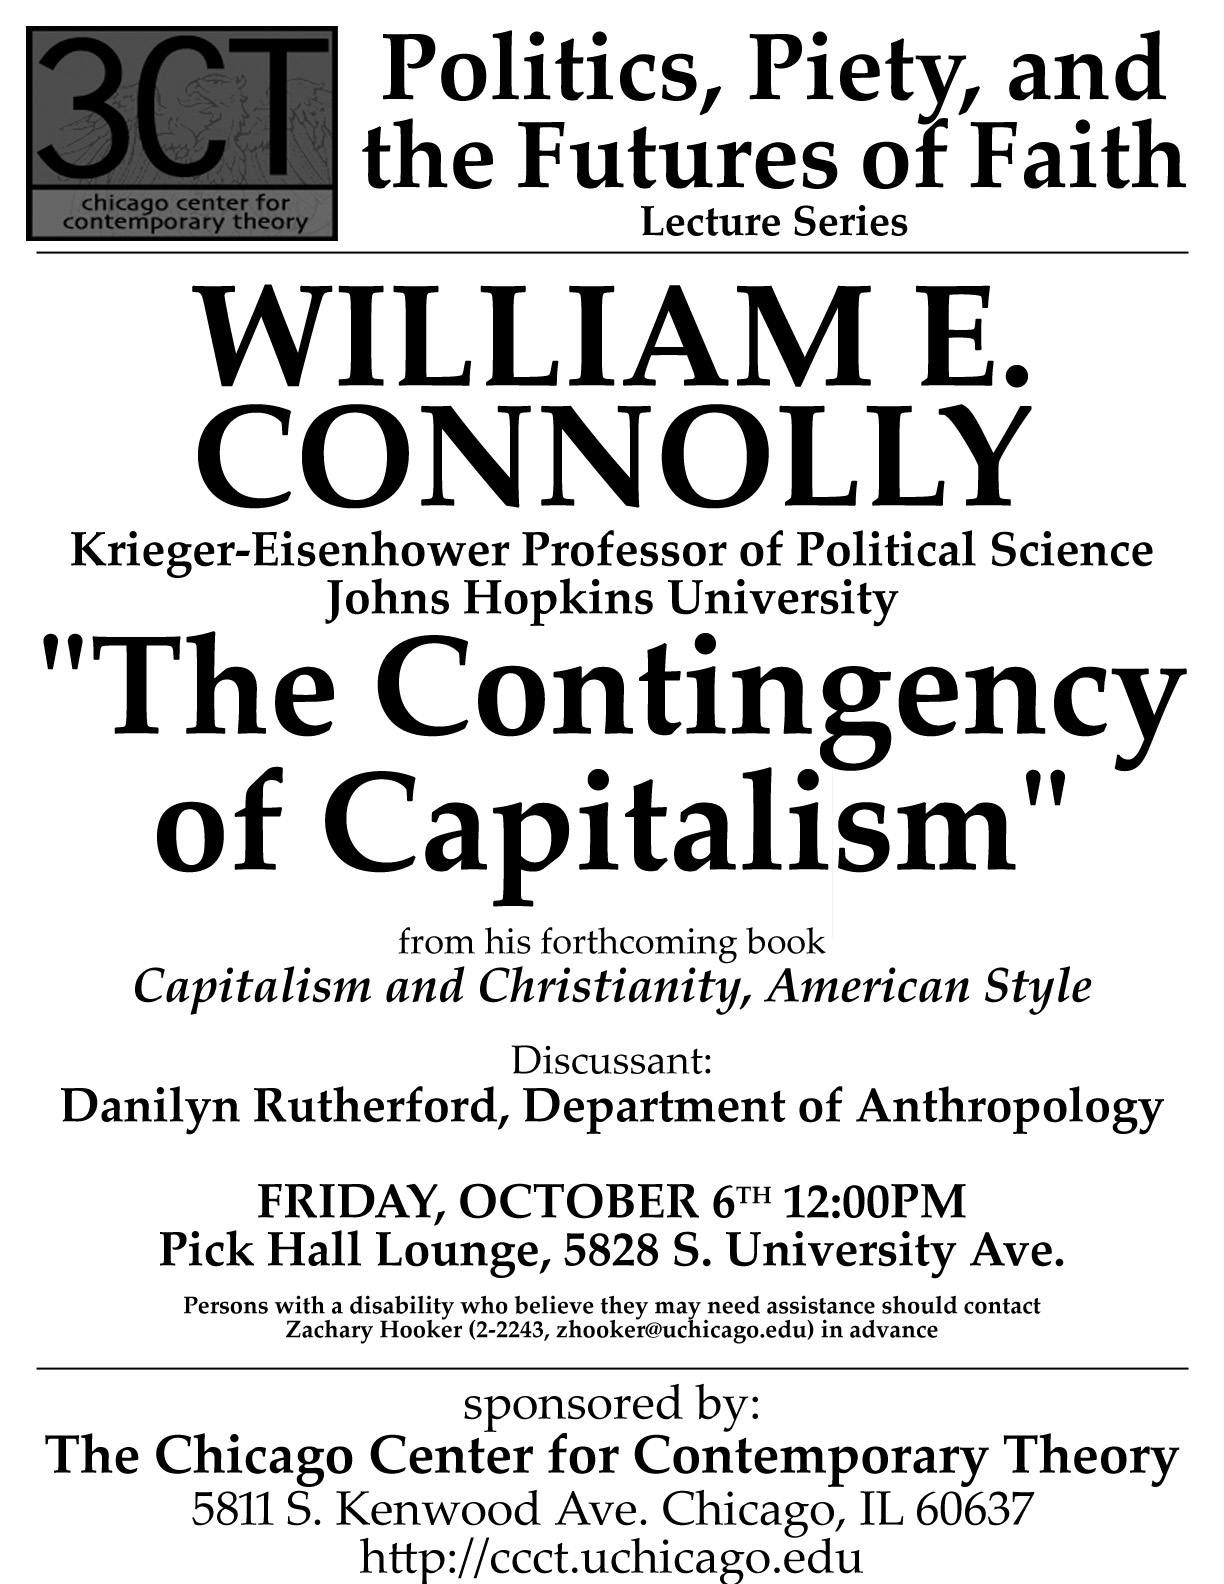 poster for 2006 William E. Connolly lecture at 3CT